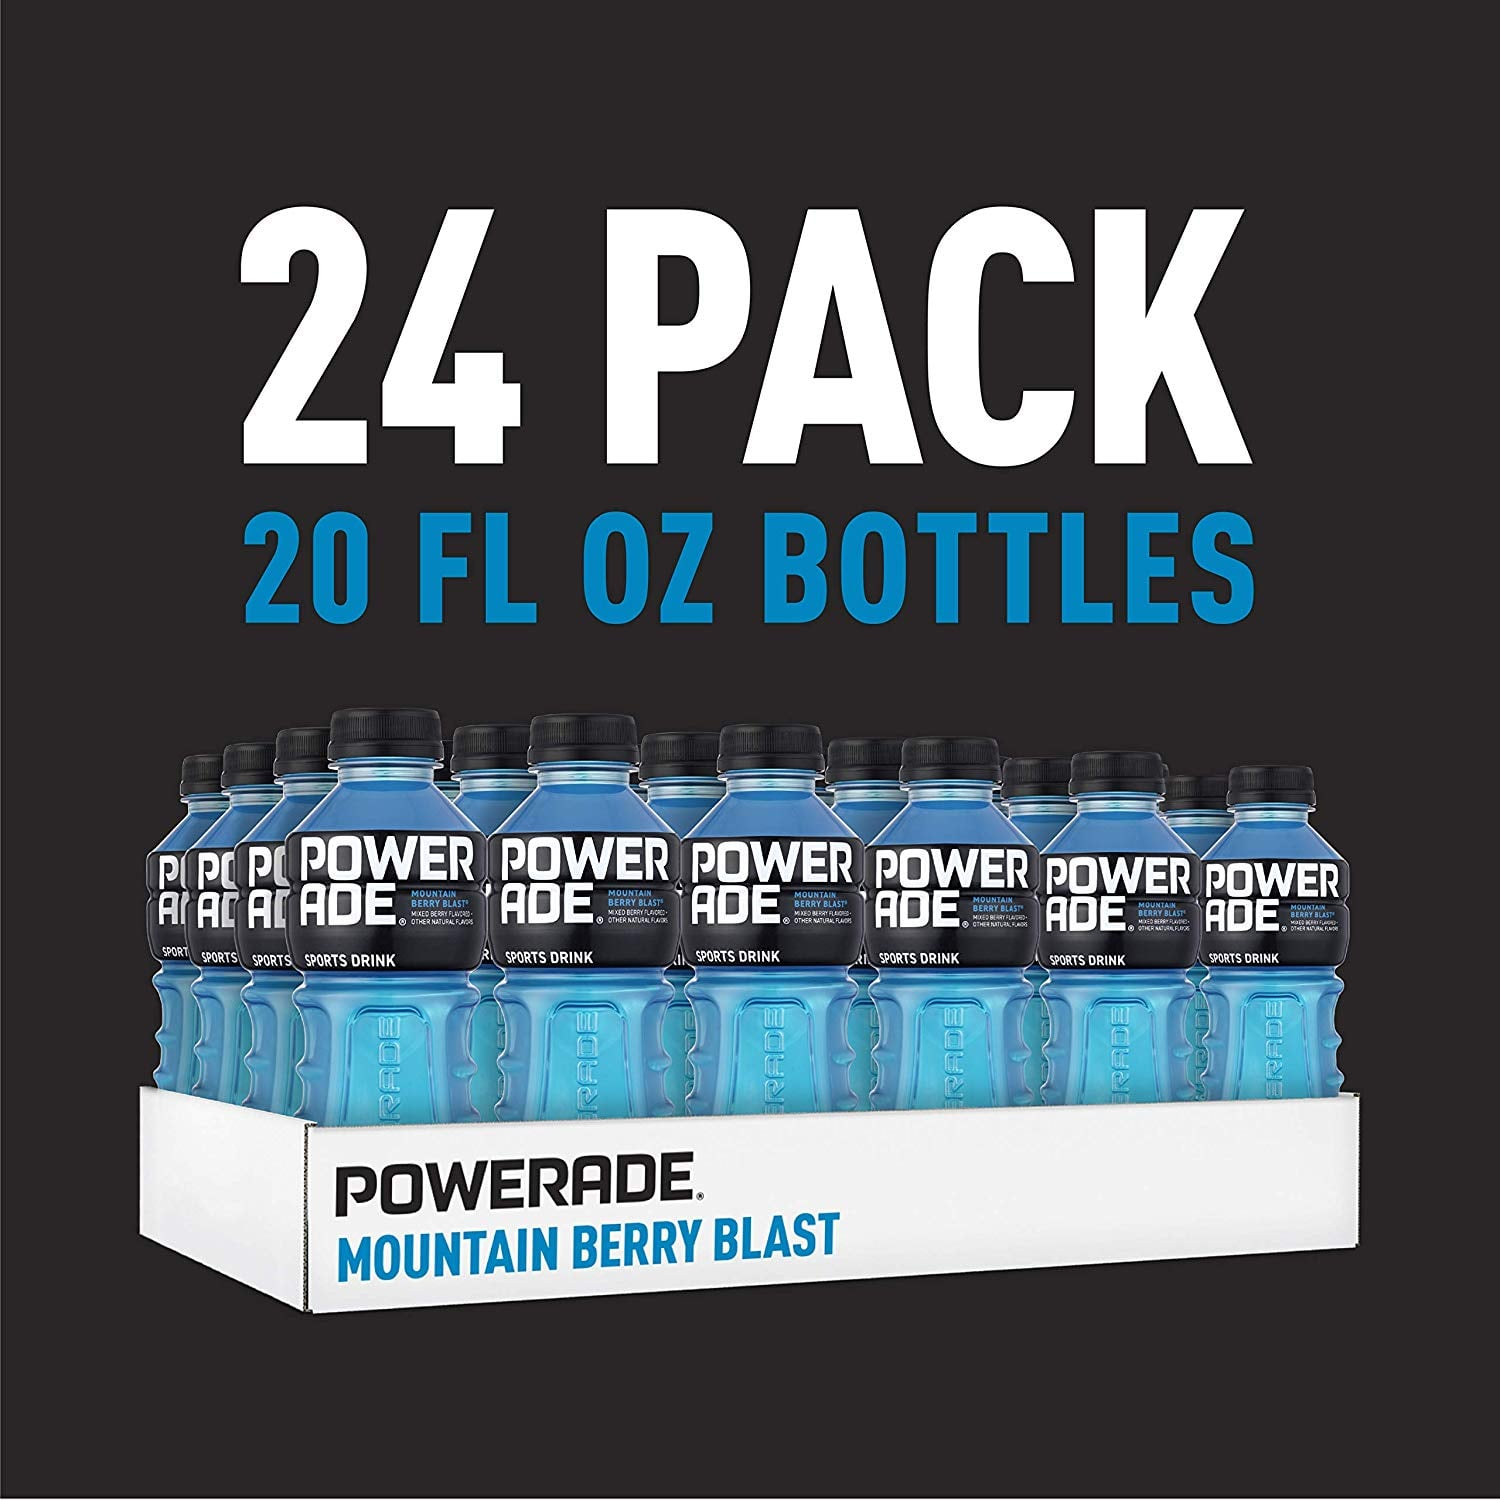 POWERADE Sports Drink, Mountain Berry Blast & others, 20 fl oz, 24 Pack Free Prime Delivery $10.02